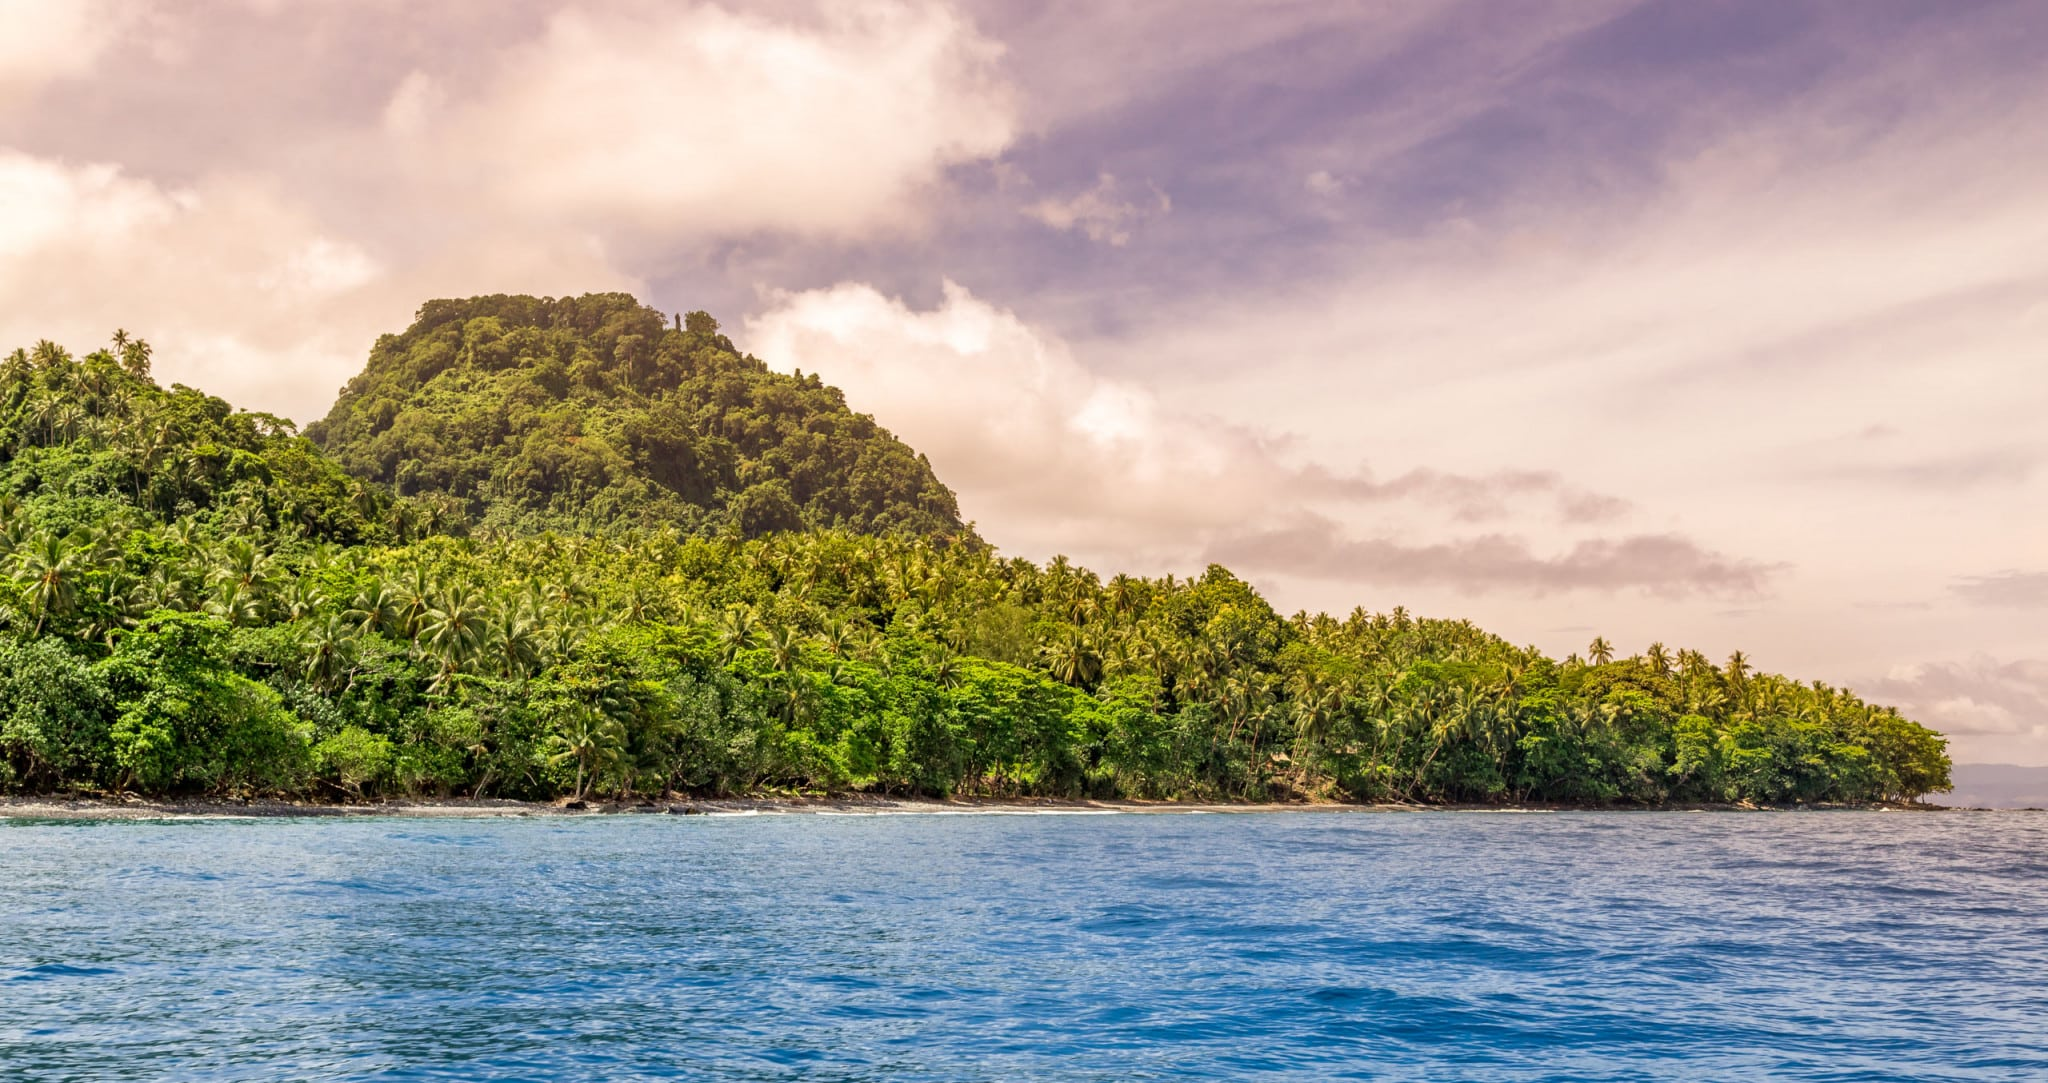 Island Coast - SOLOMON ISLANDS - 7 days in Solomon Islands itinerary: travel guide, tips & inspiration